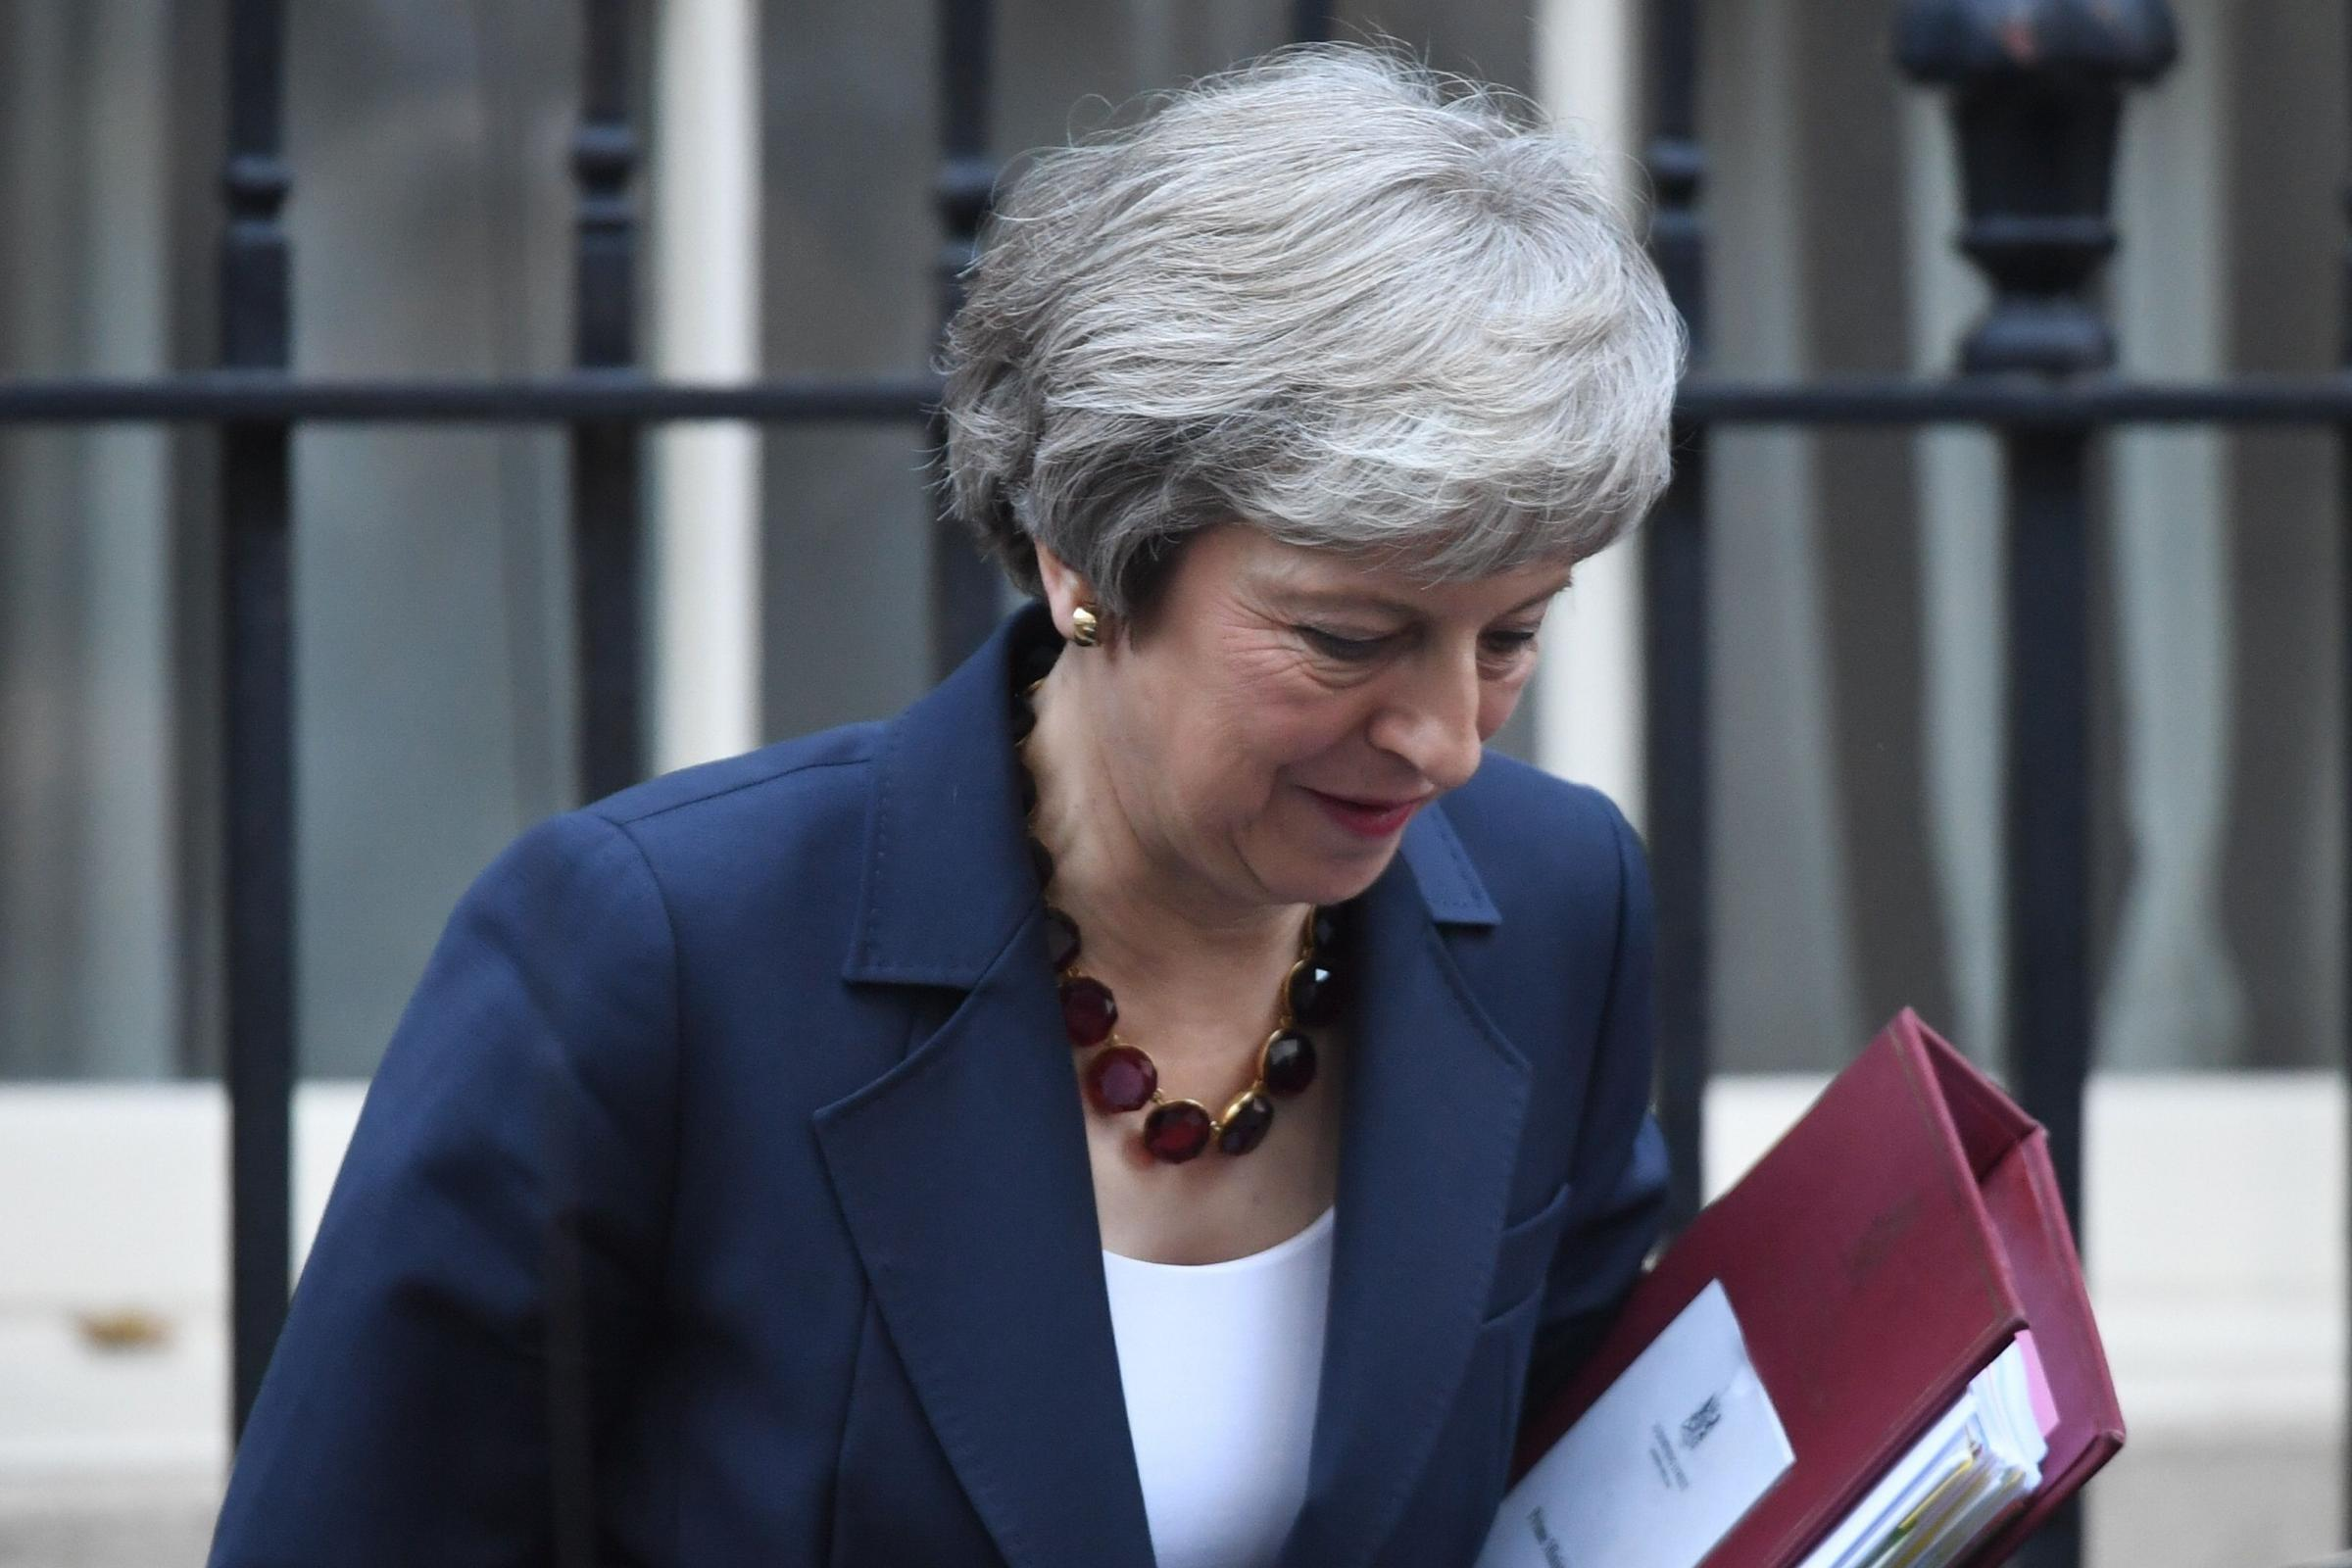 May set for Cabinet showdown over Brexit deal